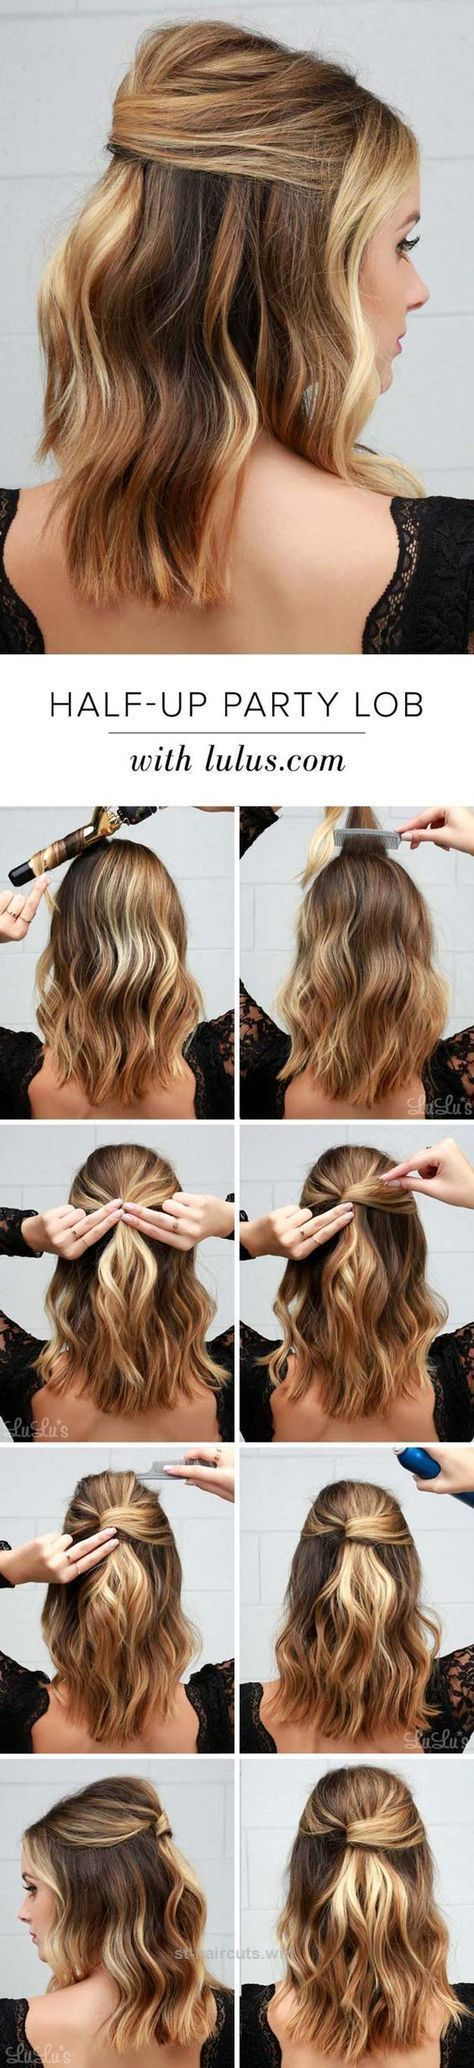 Awesome cool and easy diy hairstyles u half party lob u quick and